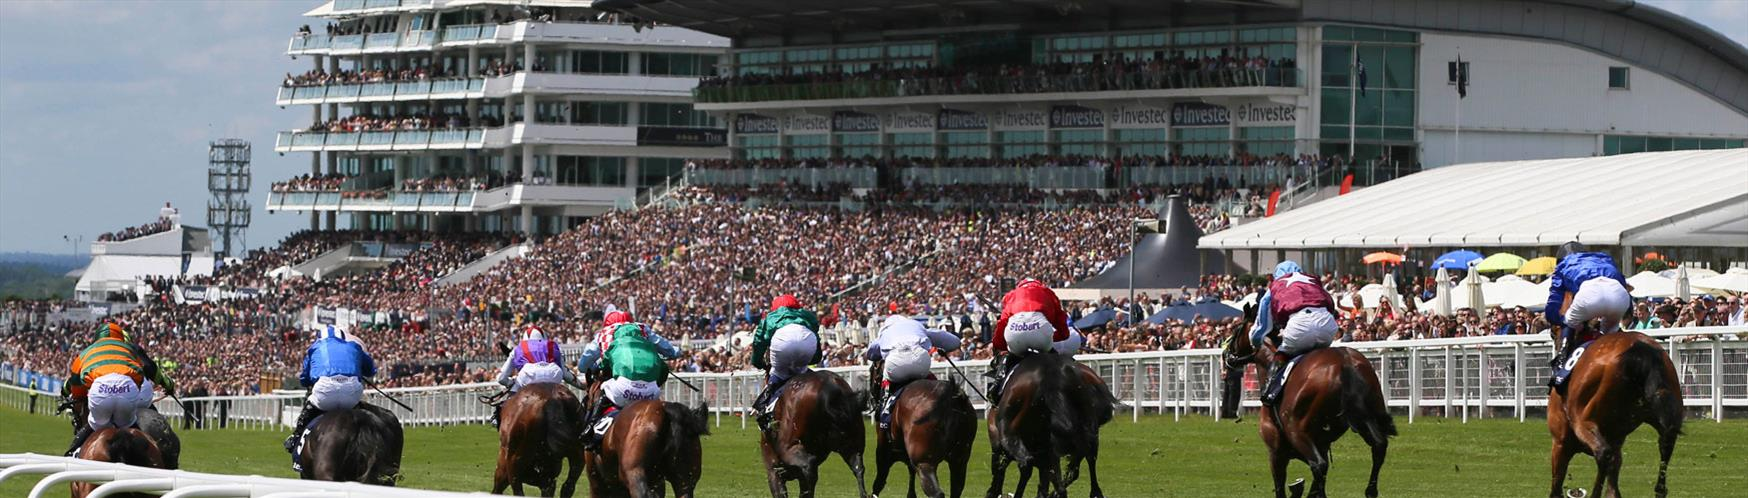 Epsom Downs Racecourse the Home of the Derby